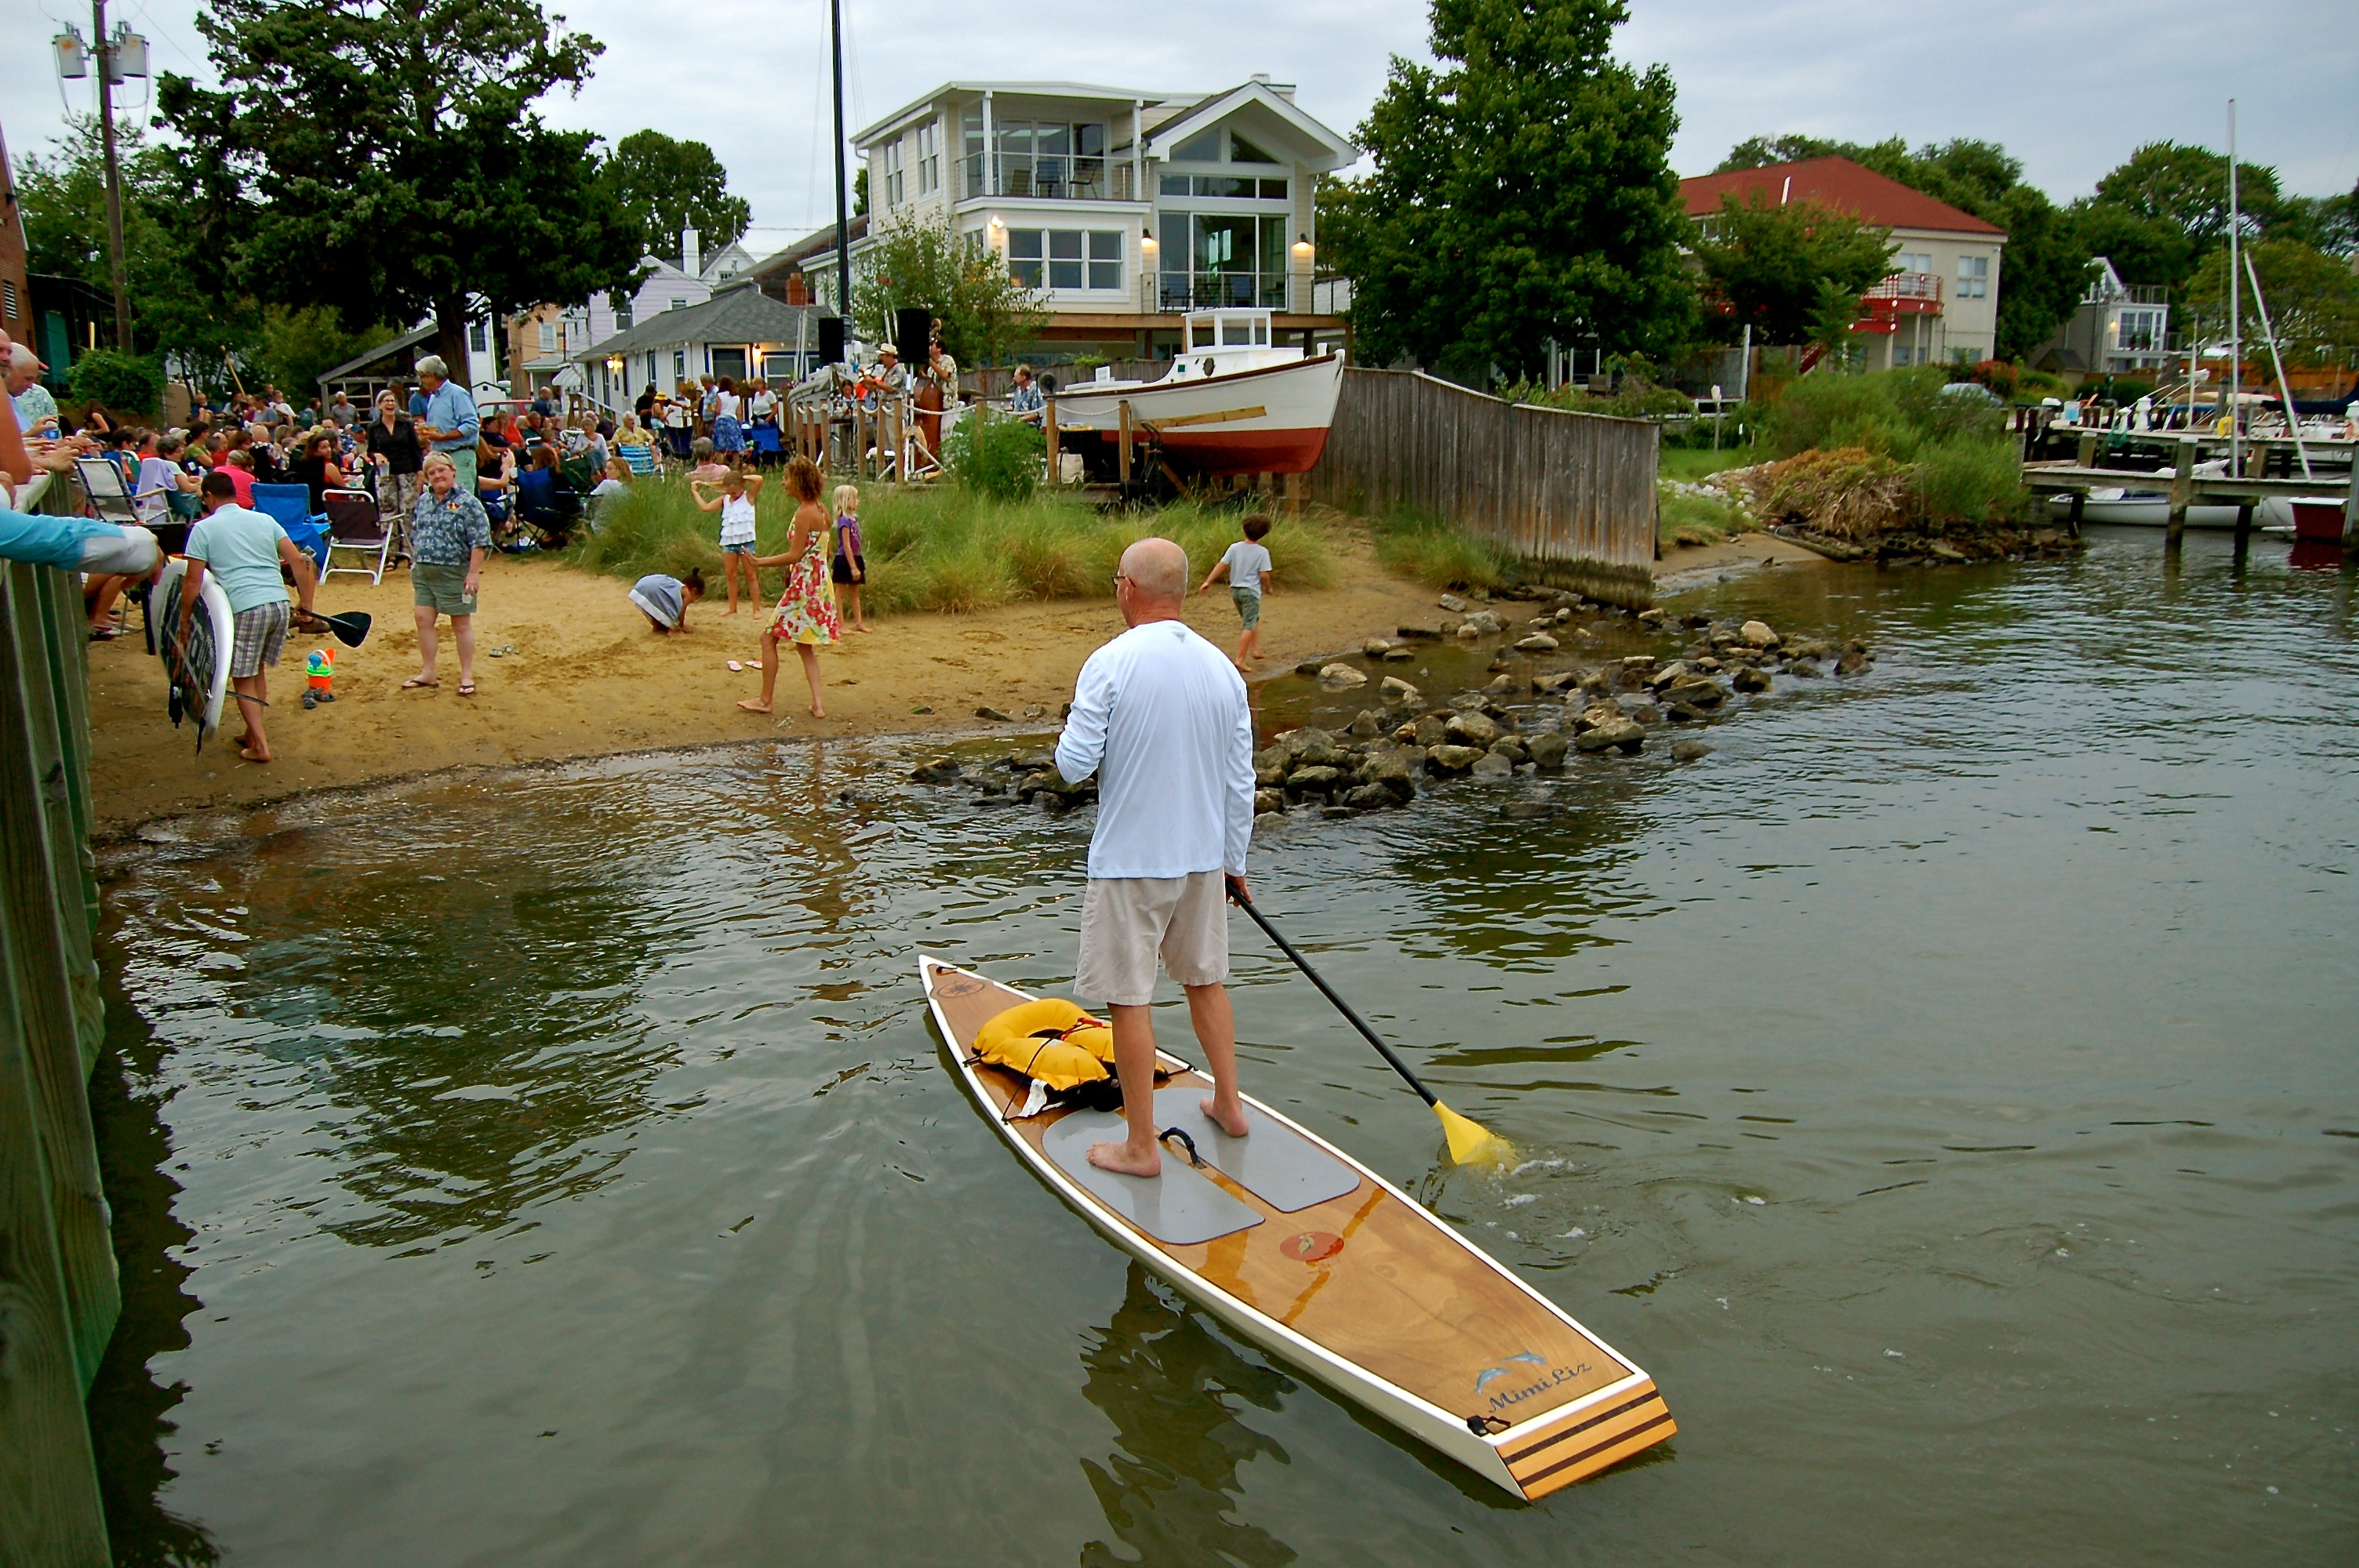 The Beach at Annapolis Maritime Museum